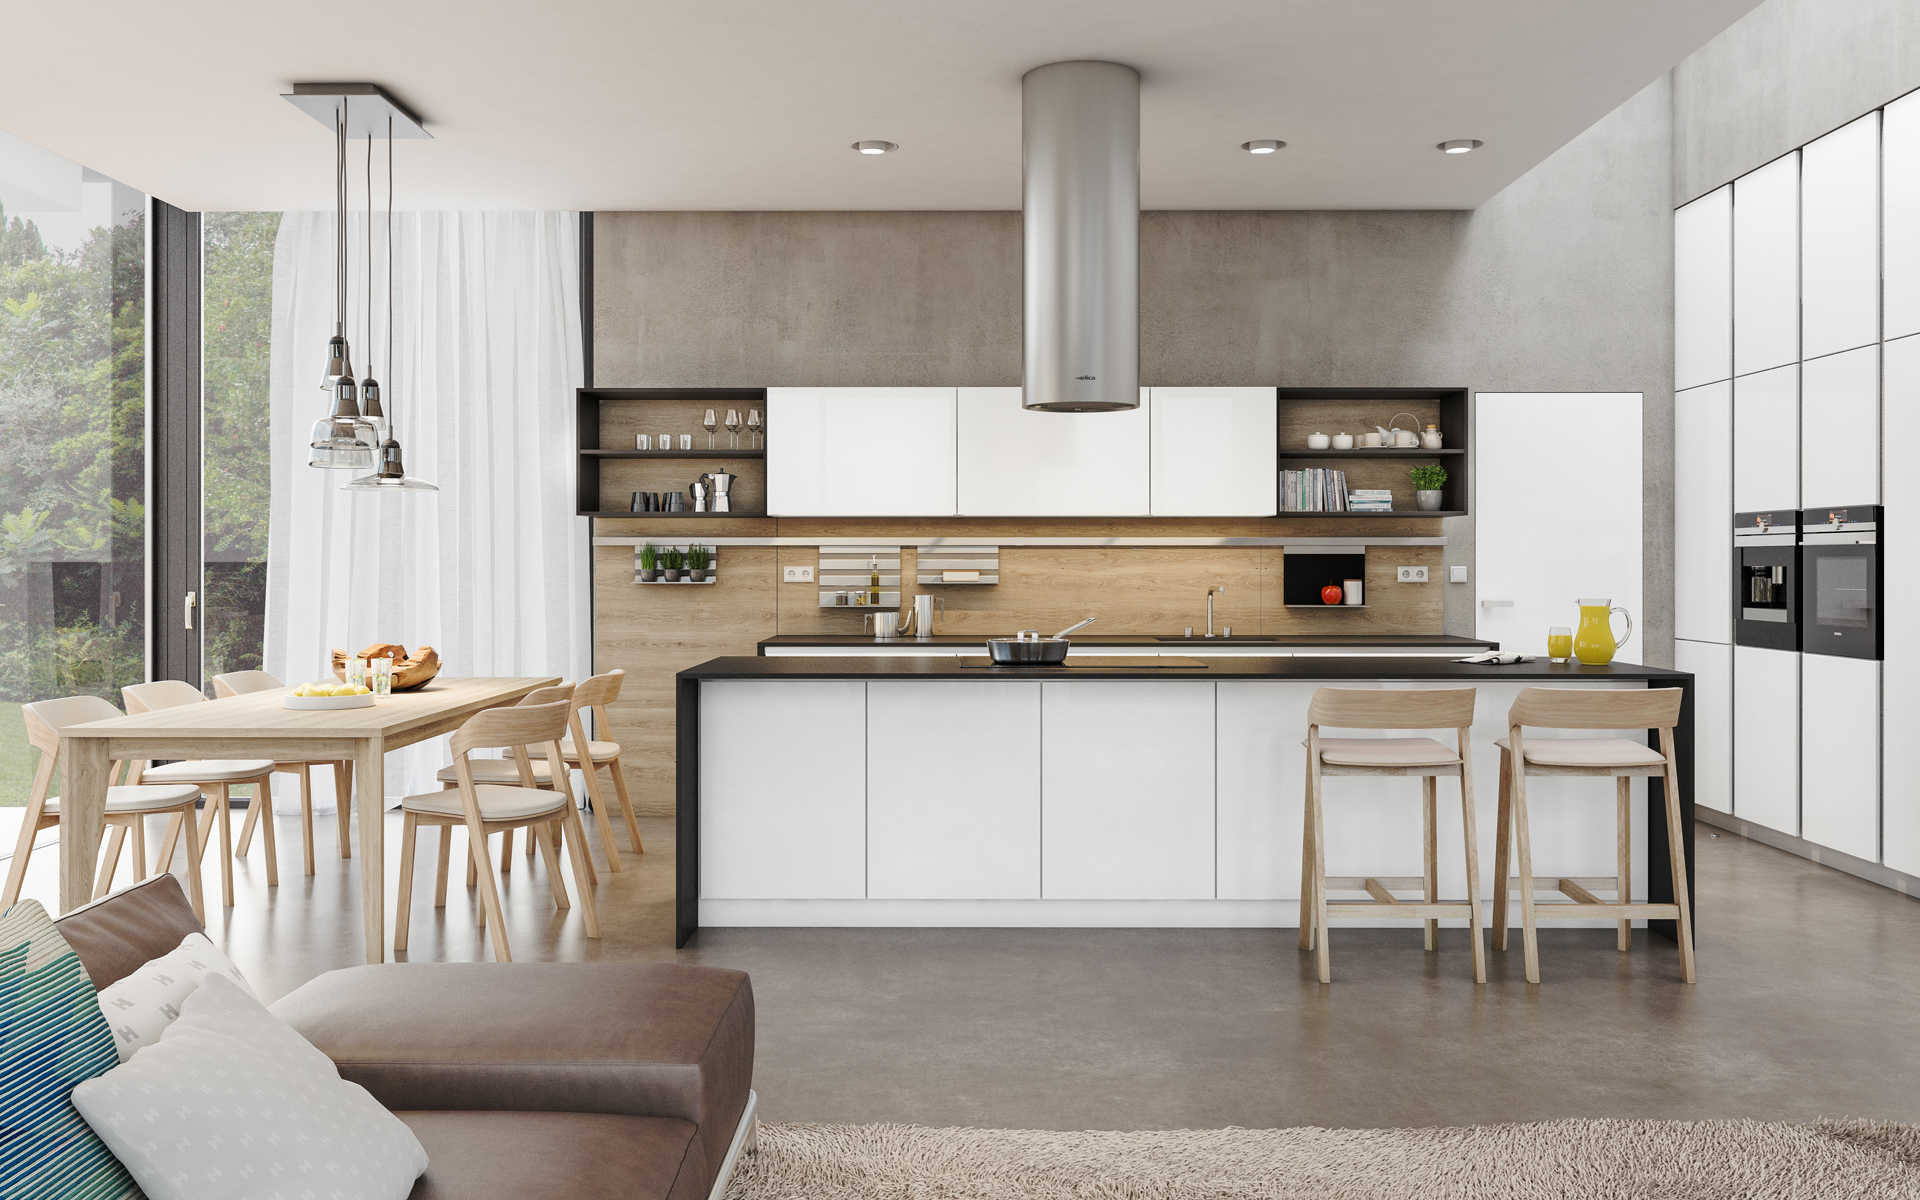 INTERIOR CONCEPT HANÁK is endless in its possibilities